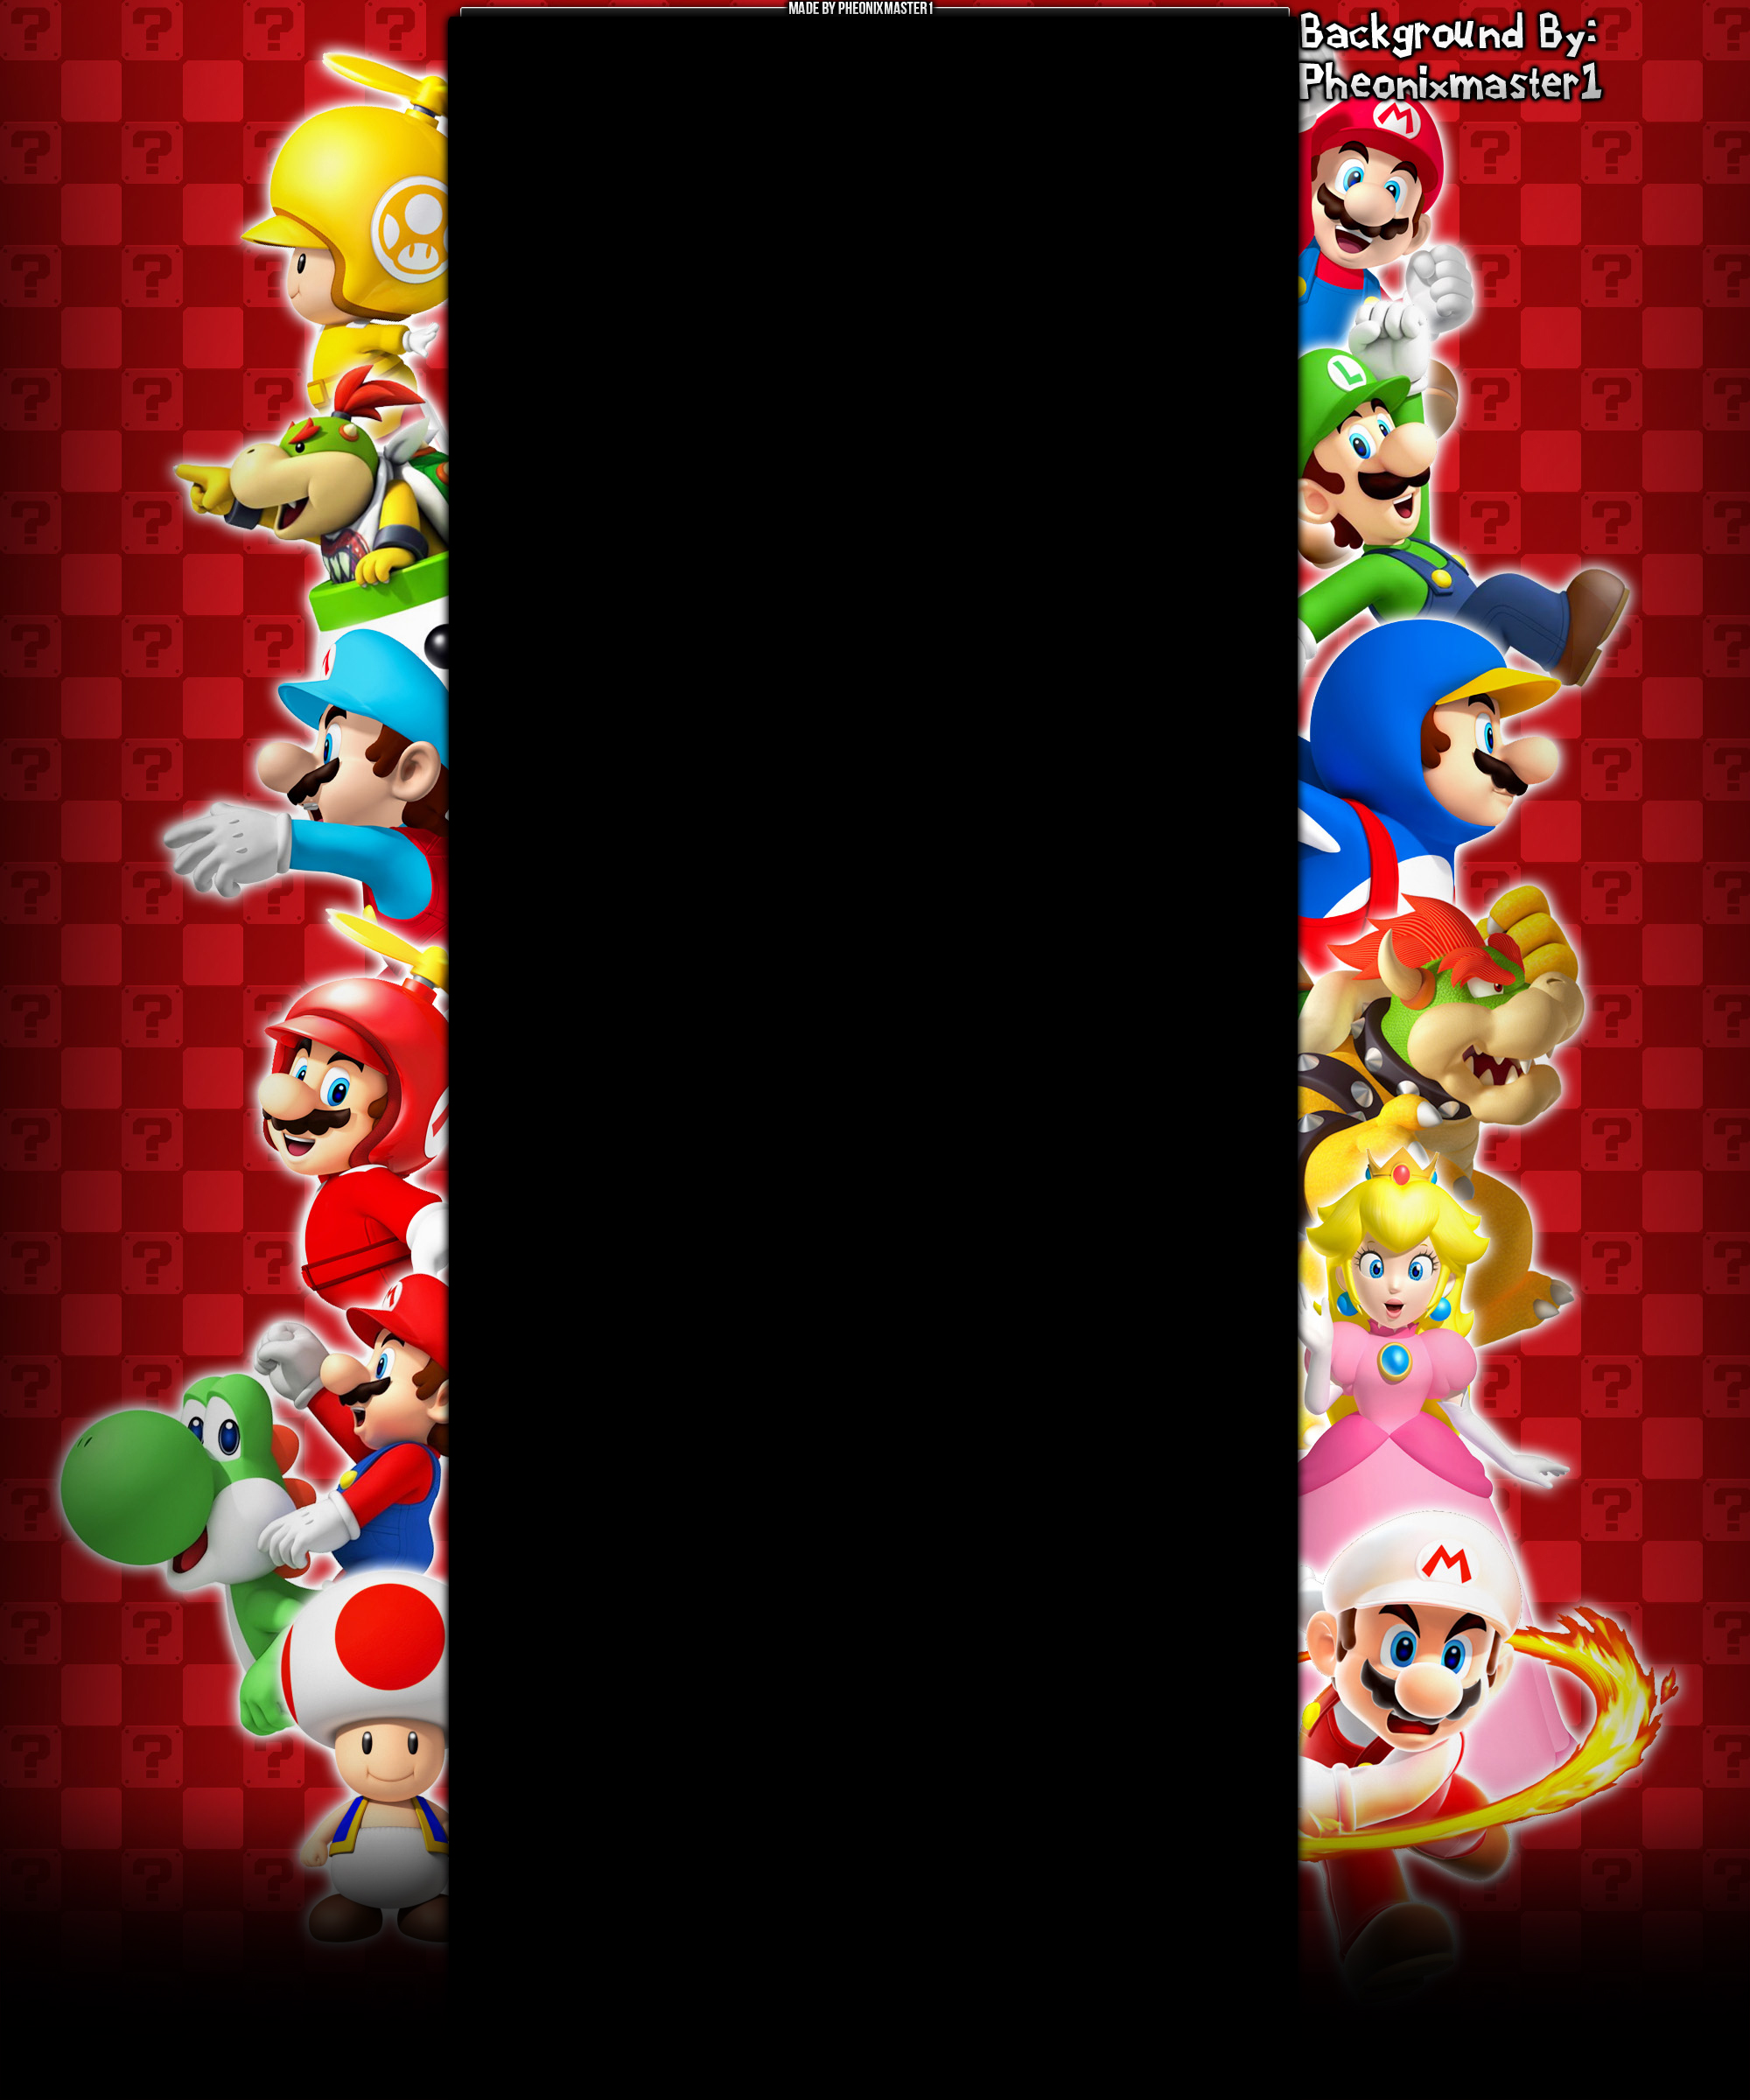 New Super Mario Bros Ds Wii Youtube Background By Pheonixmaster1